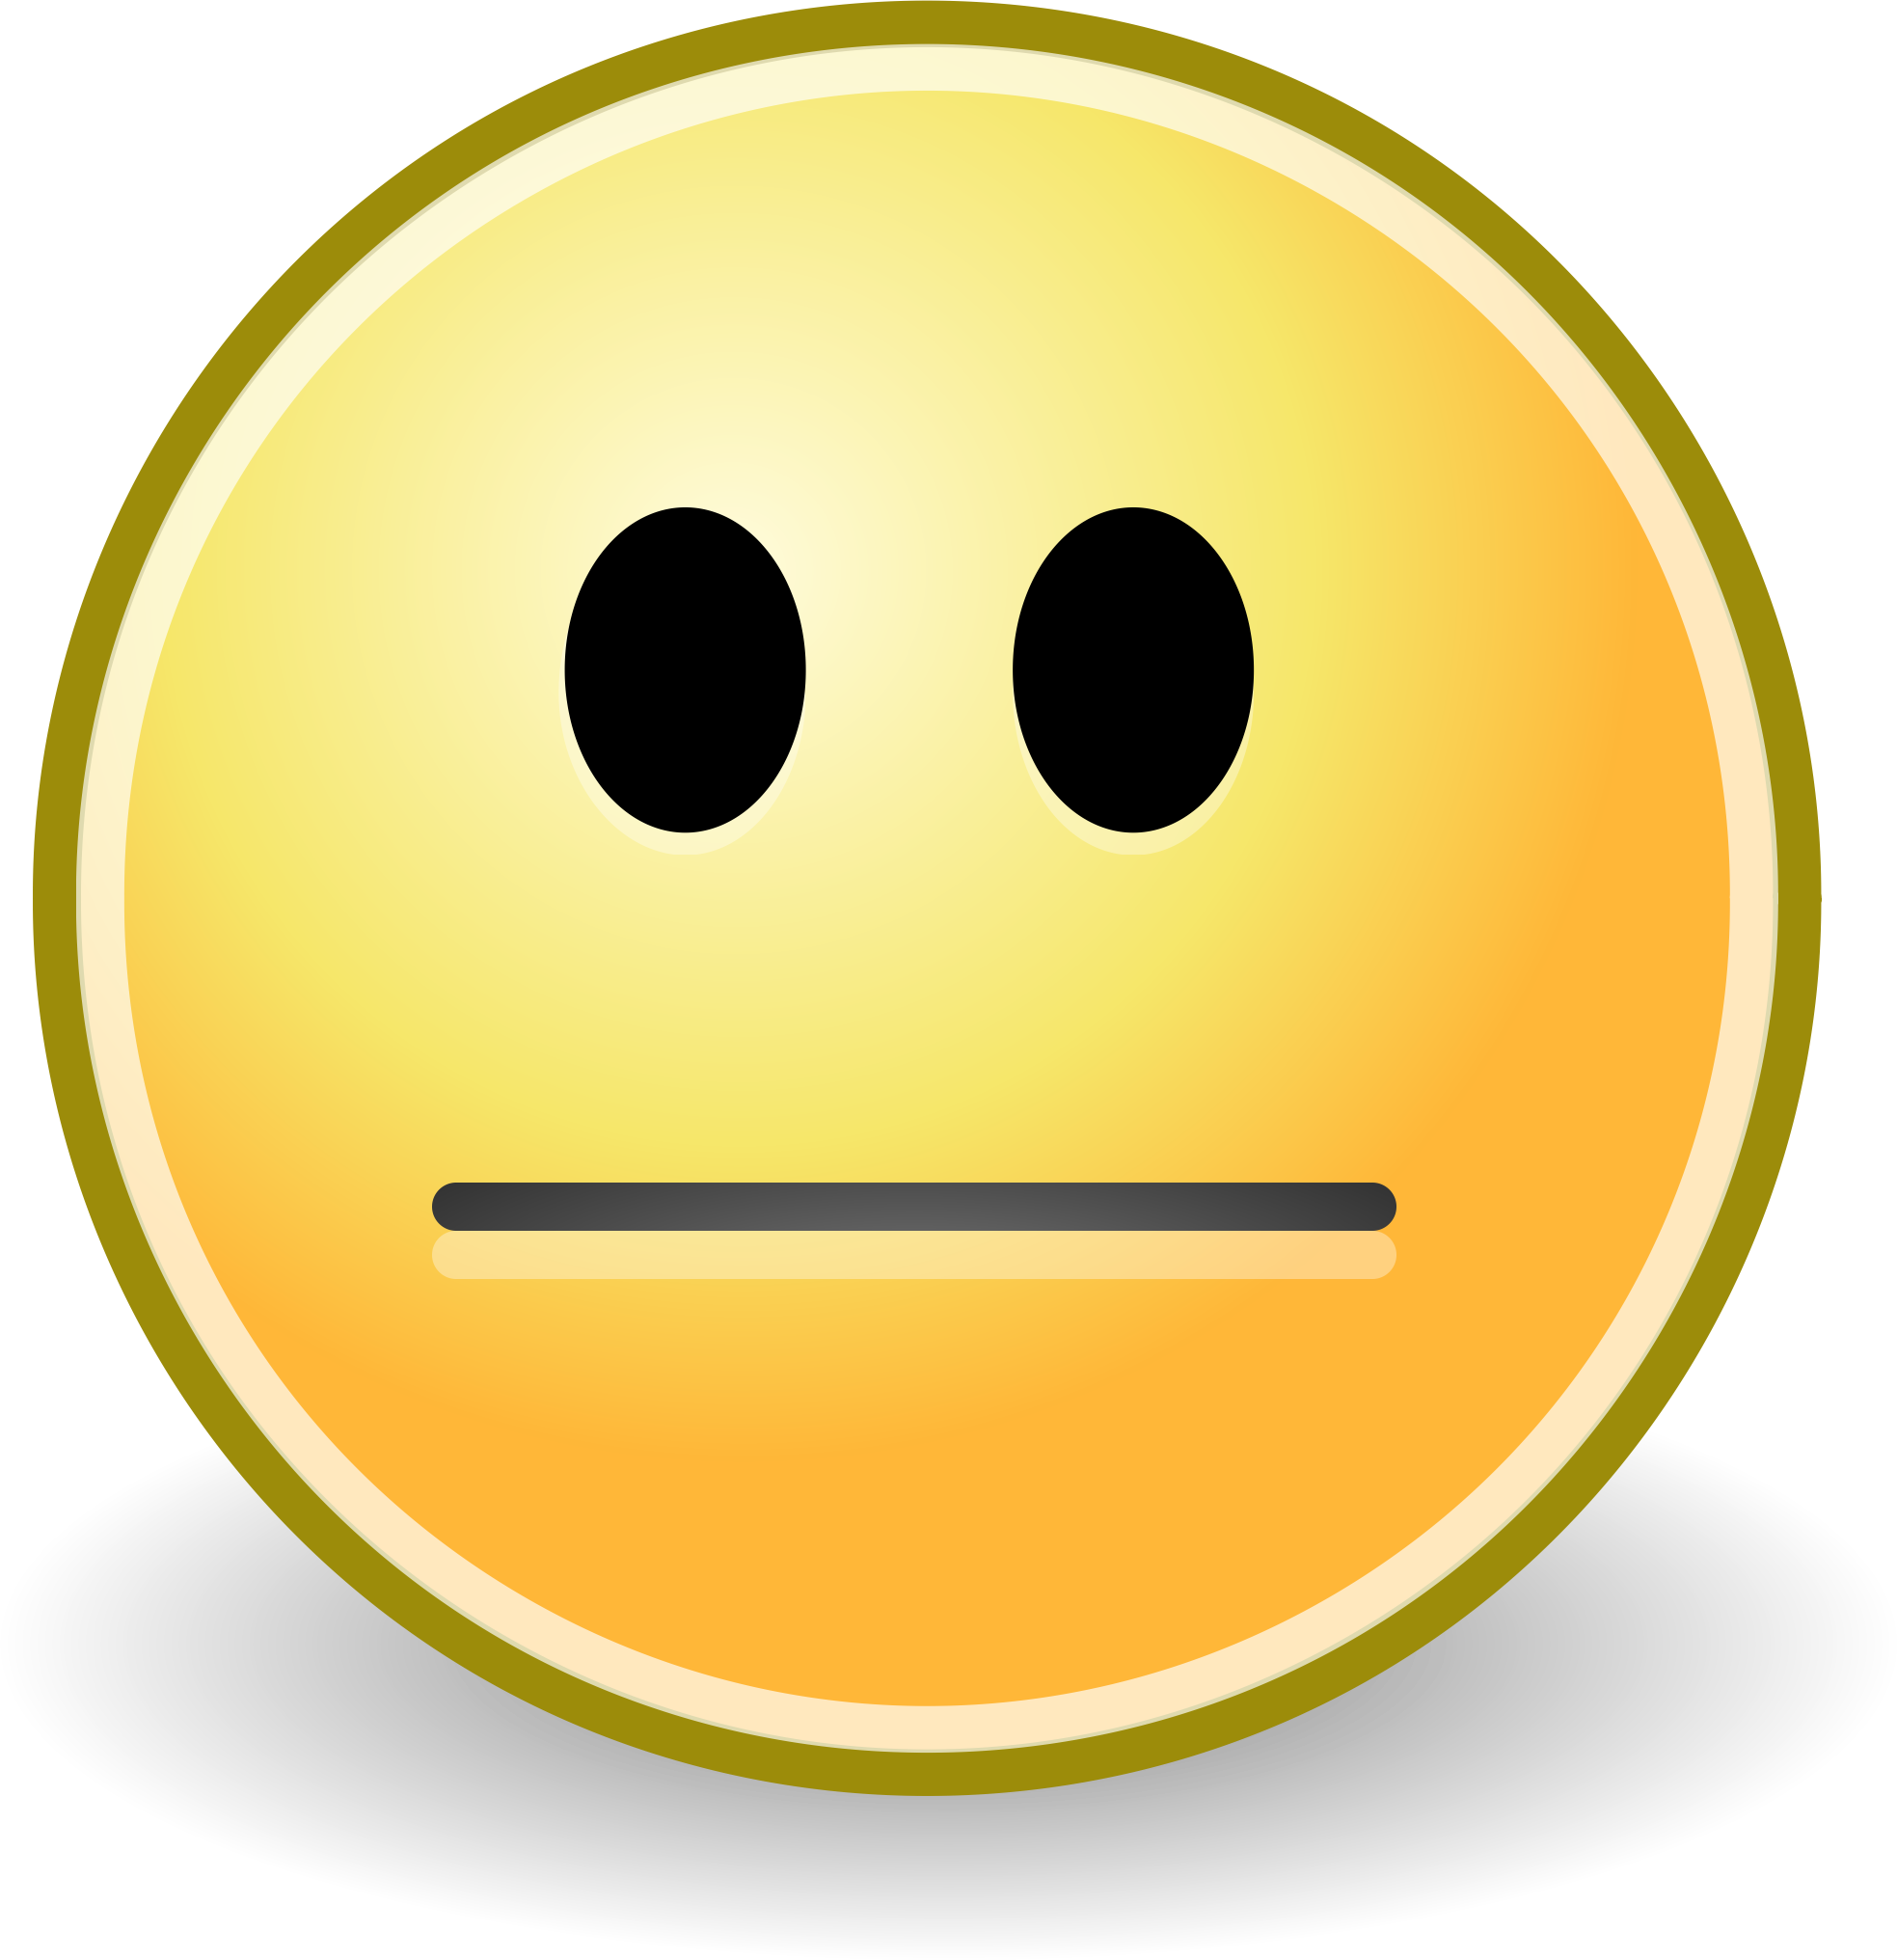 Straight Line Smiley Face Clip Art : Straight smiley face imgkid the image kid has it